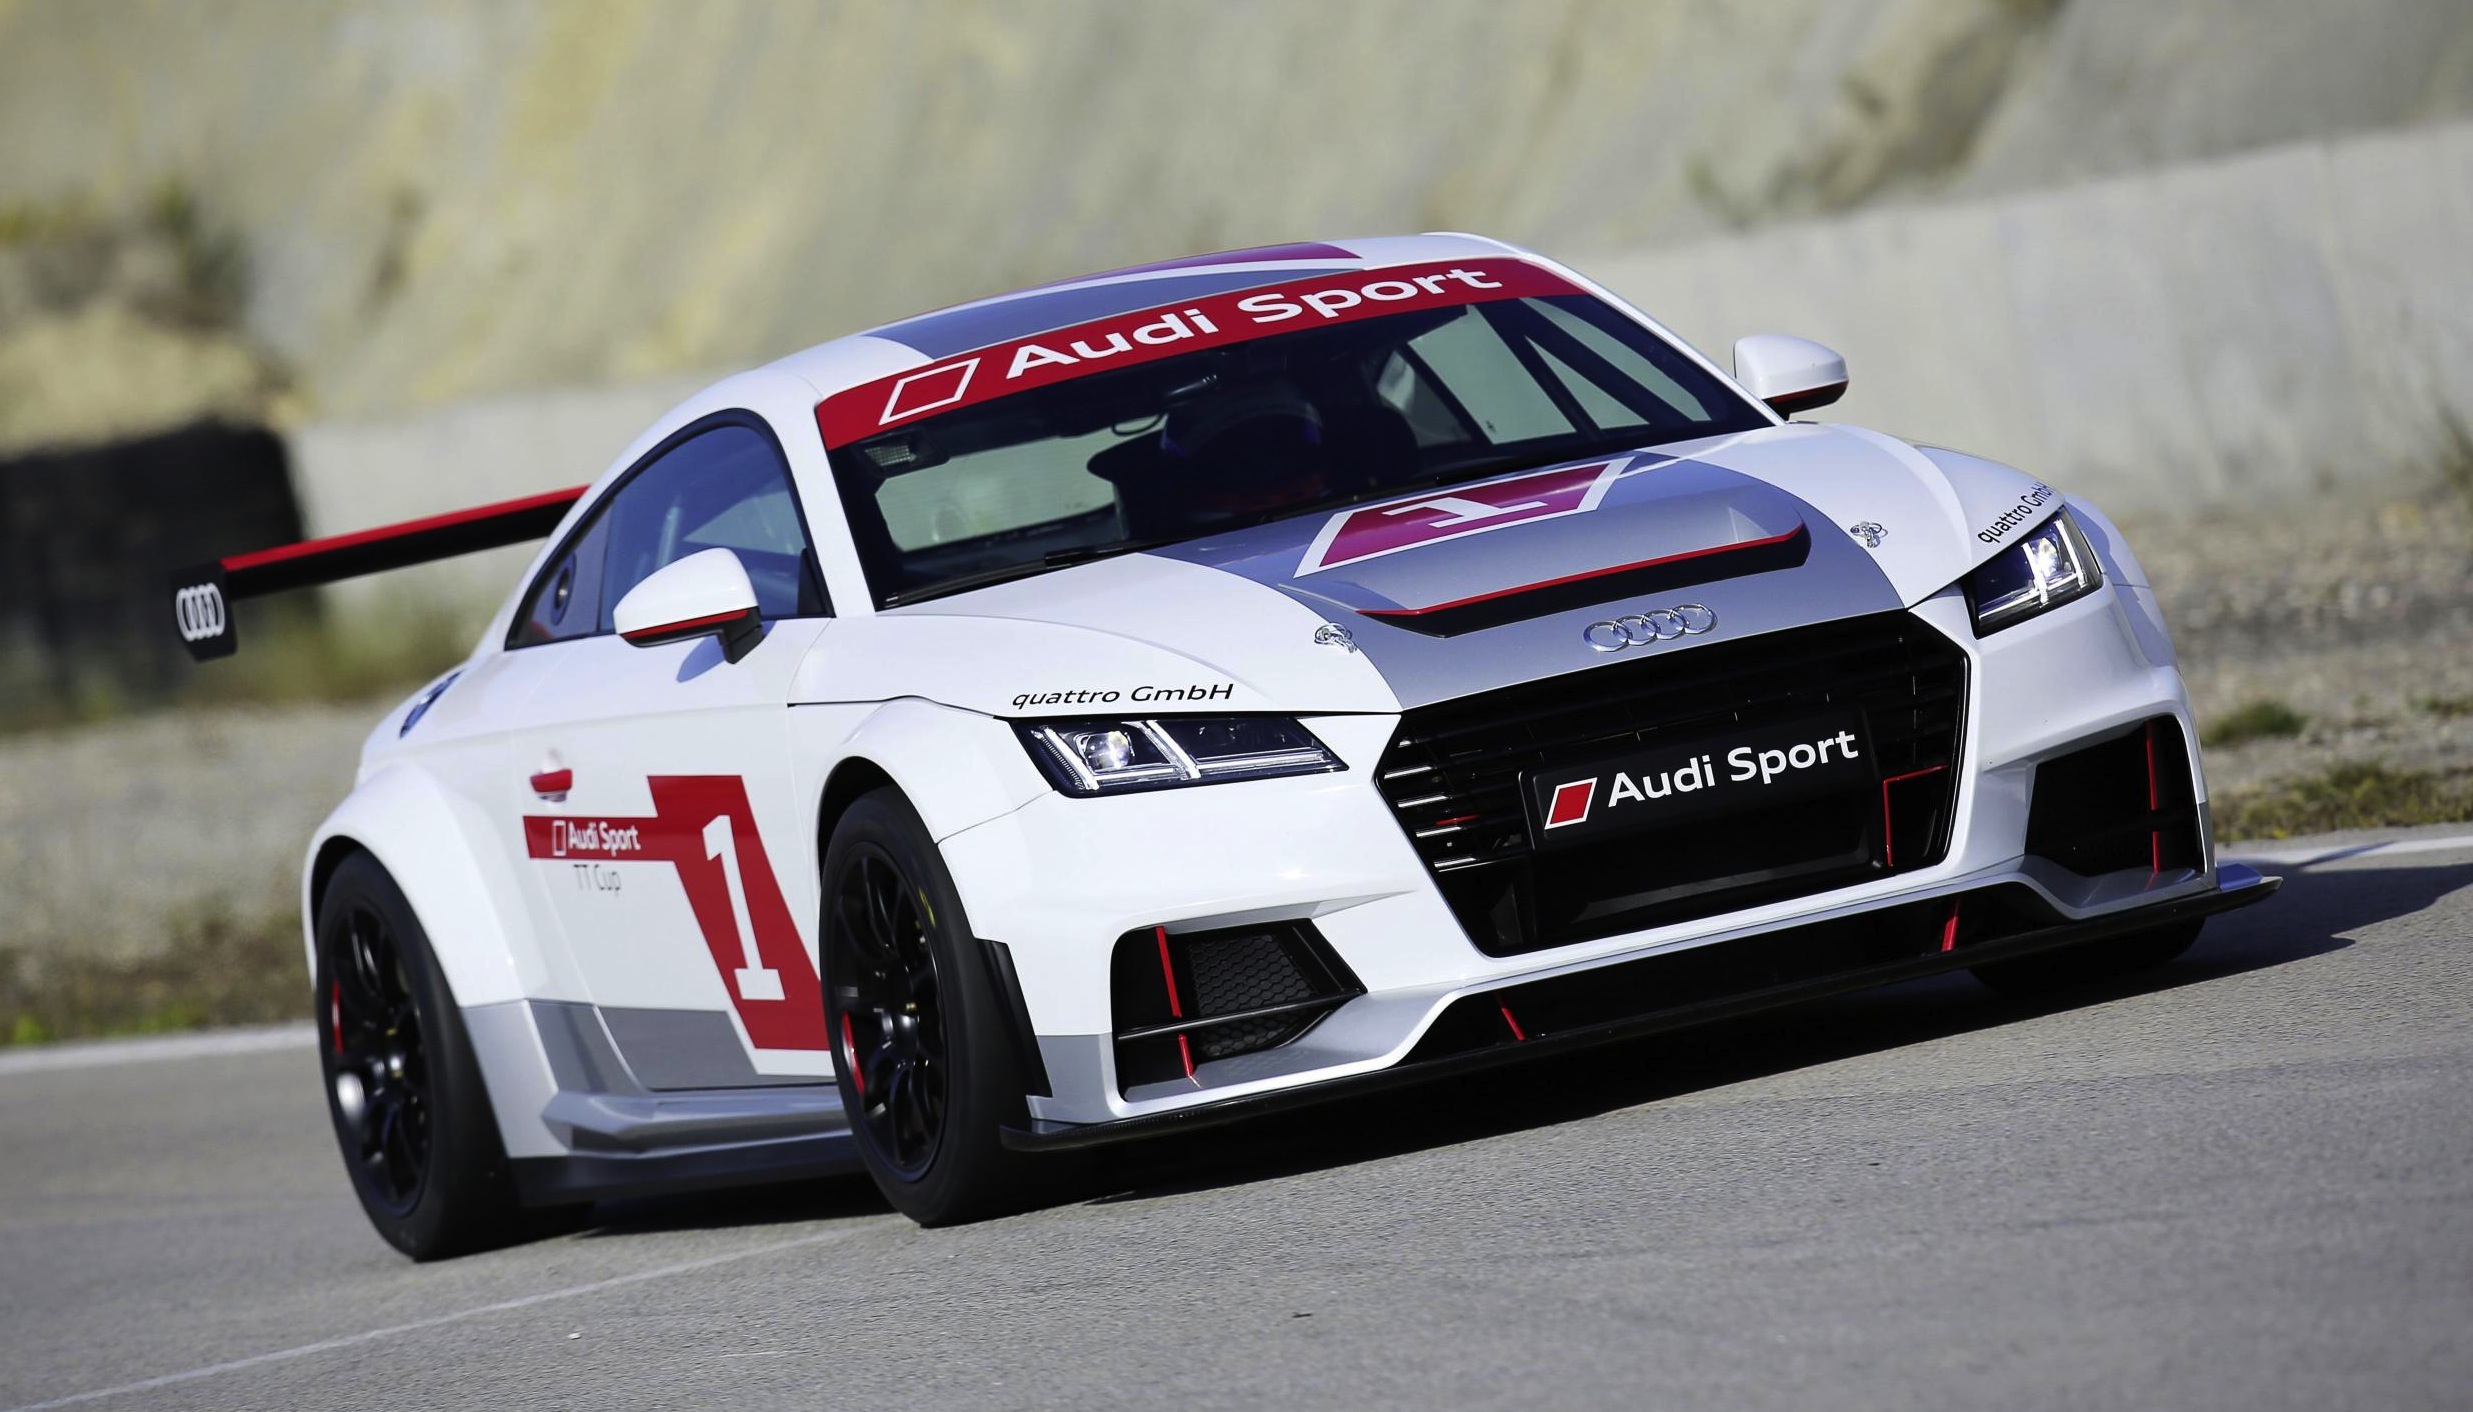 audi sport tt cup one make series announced for 2015 dtm performancedrive. Black Bedroom Furniture Sets. Home Design Ideas